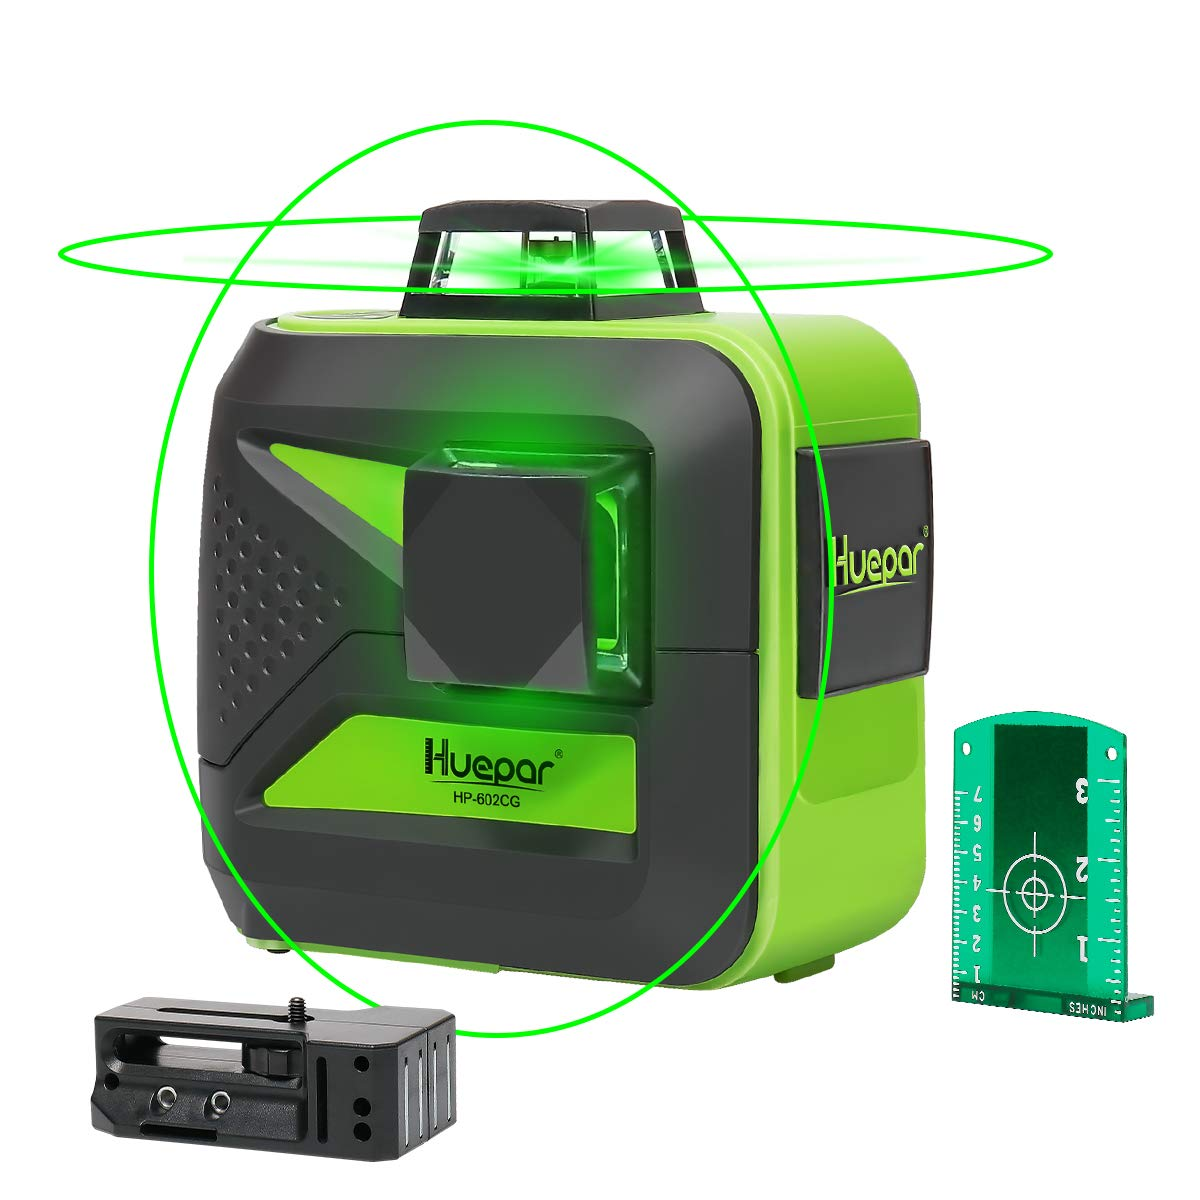 Huepar 2x360 Cross Line Laser, Self-Leveling Green Beam Laser Level Dual Plane Leveling and Alignment Line Laser Level -One 360° Horizontal and One 360° Vertical Line -Magnetic Pivoting Base 602CG